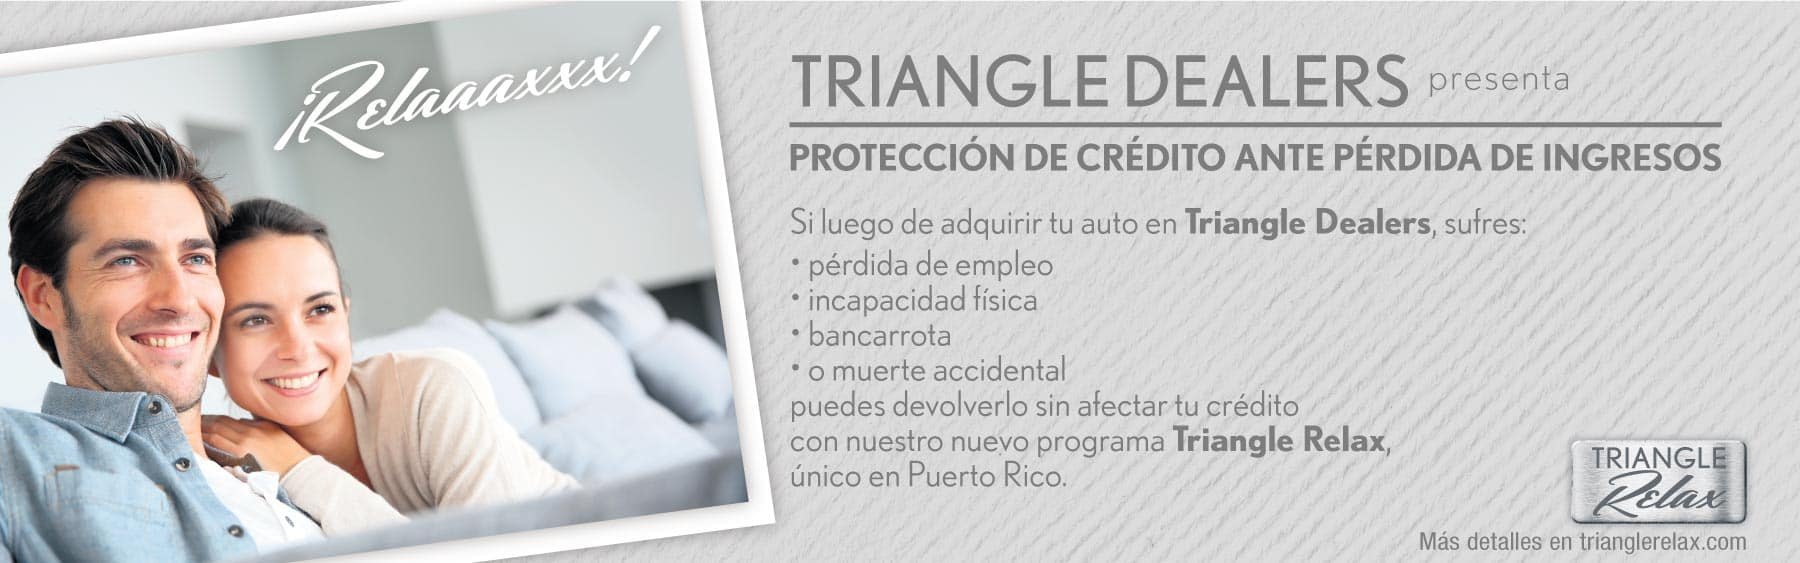 Triangle Relax